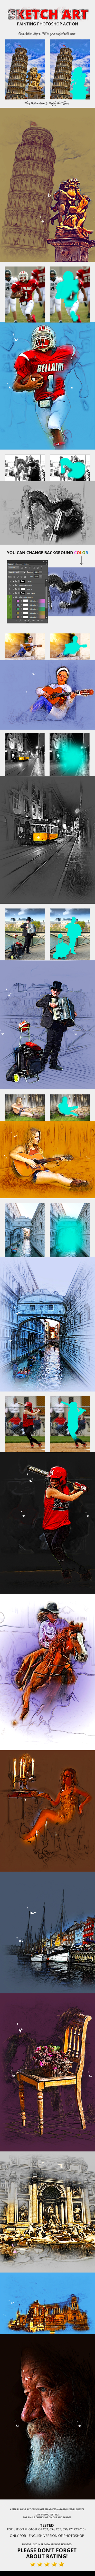 Sketch Art Painting Photoshop Action - Photo Effects Actions